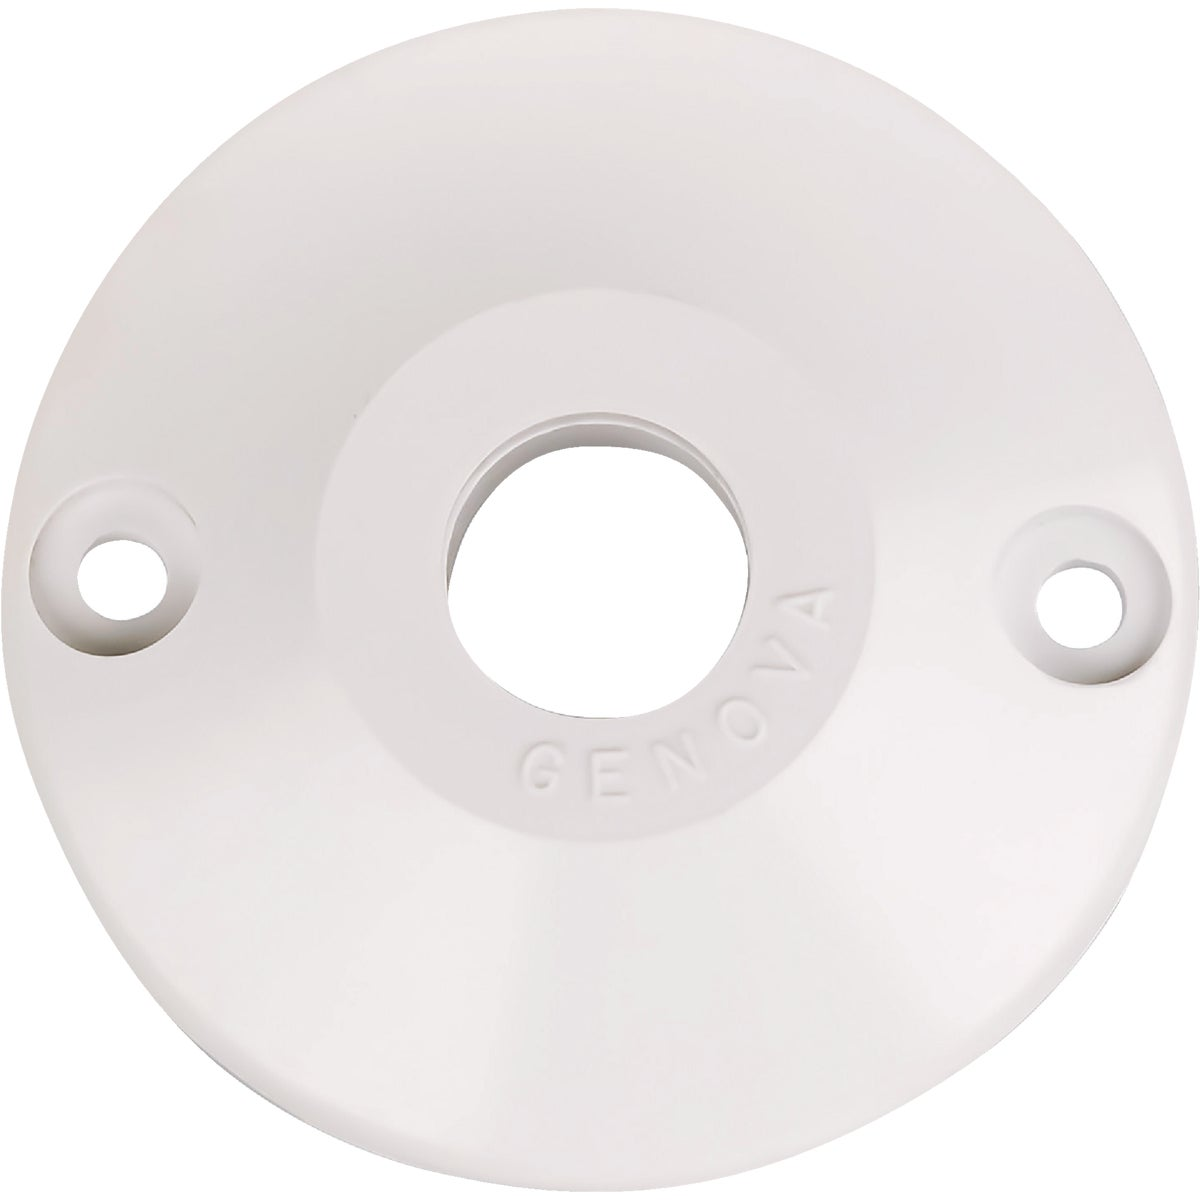 "1/2"" TORQUE ESCUTCHEON"